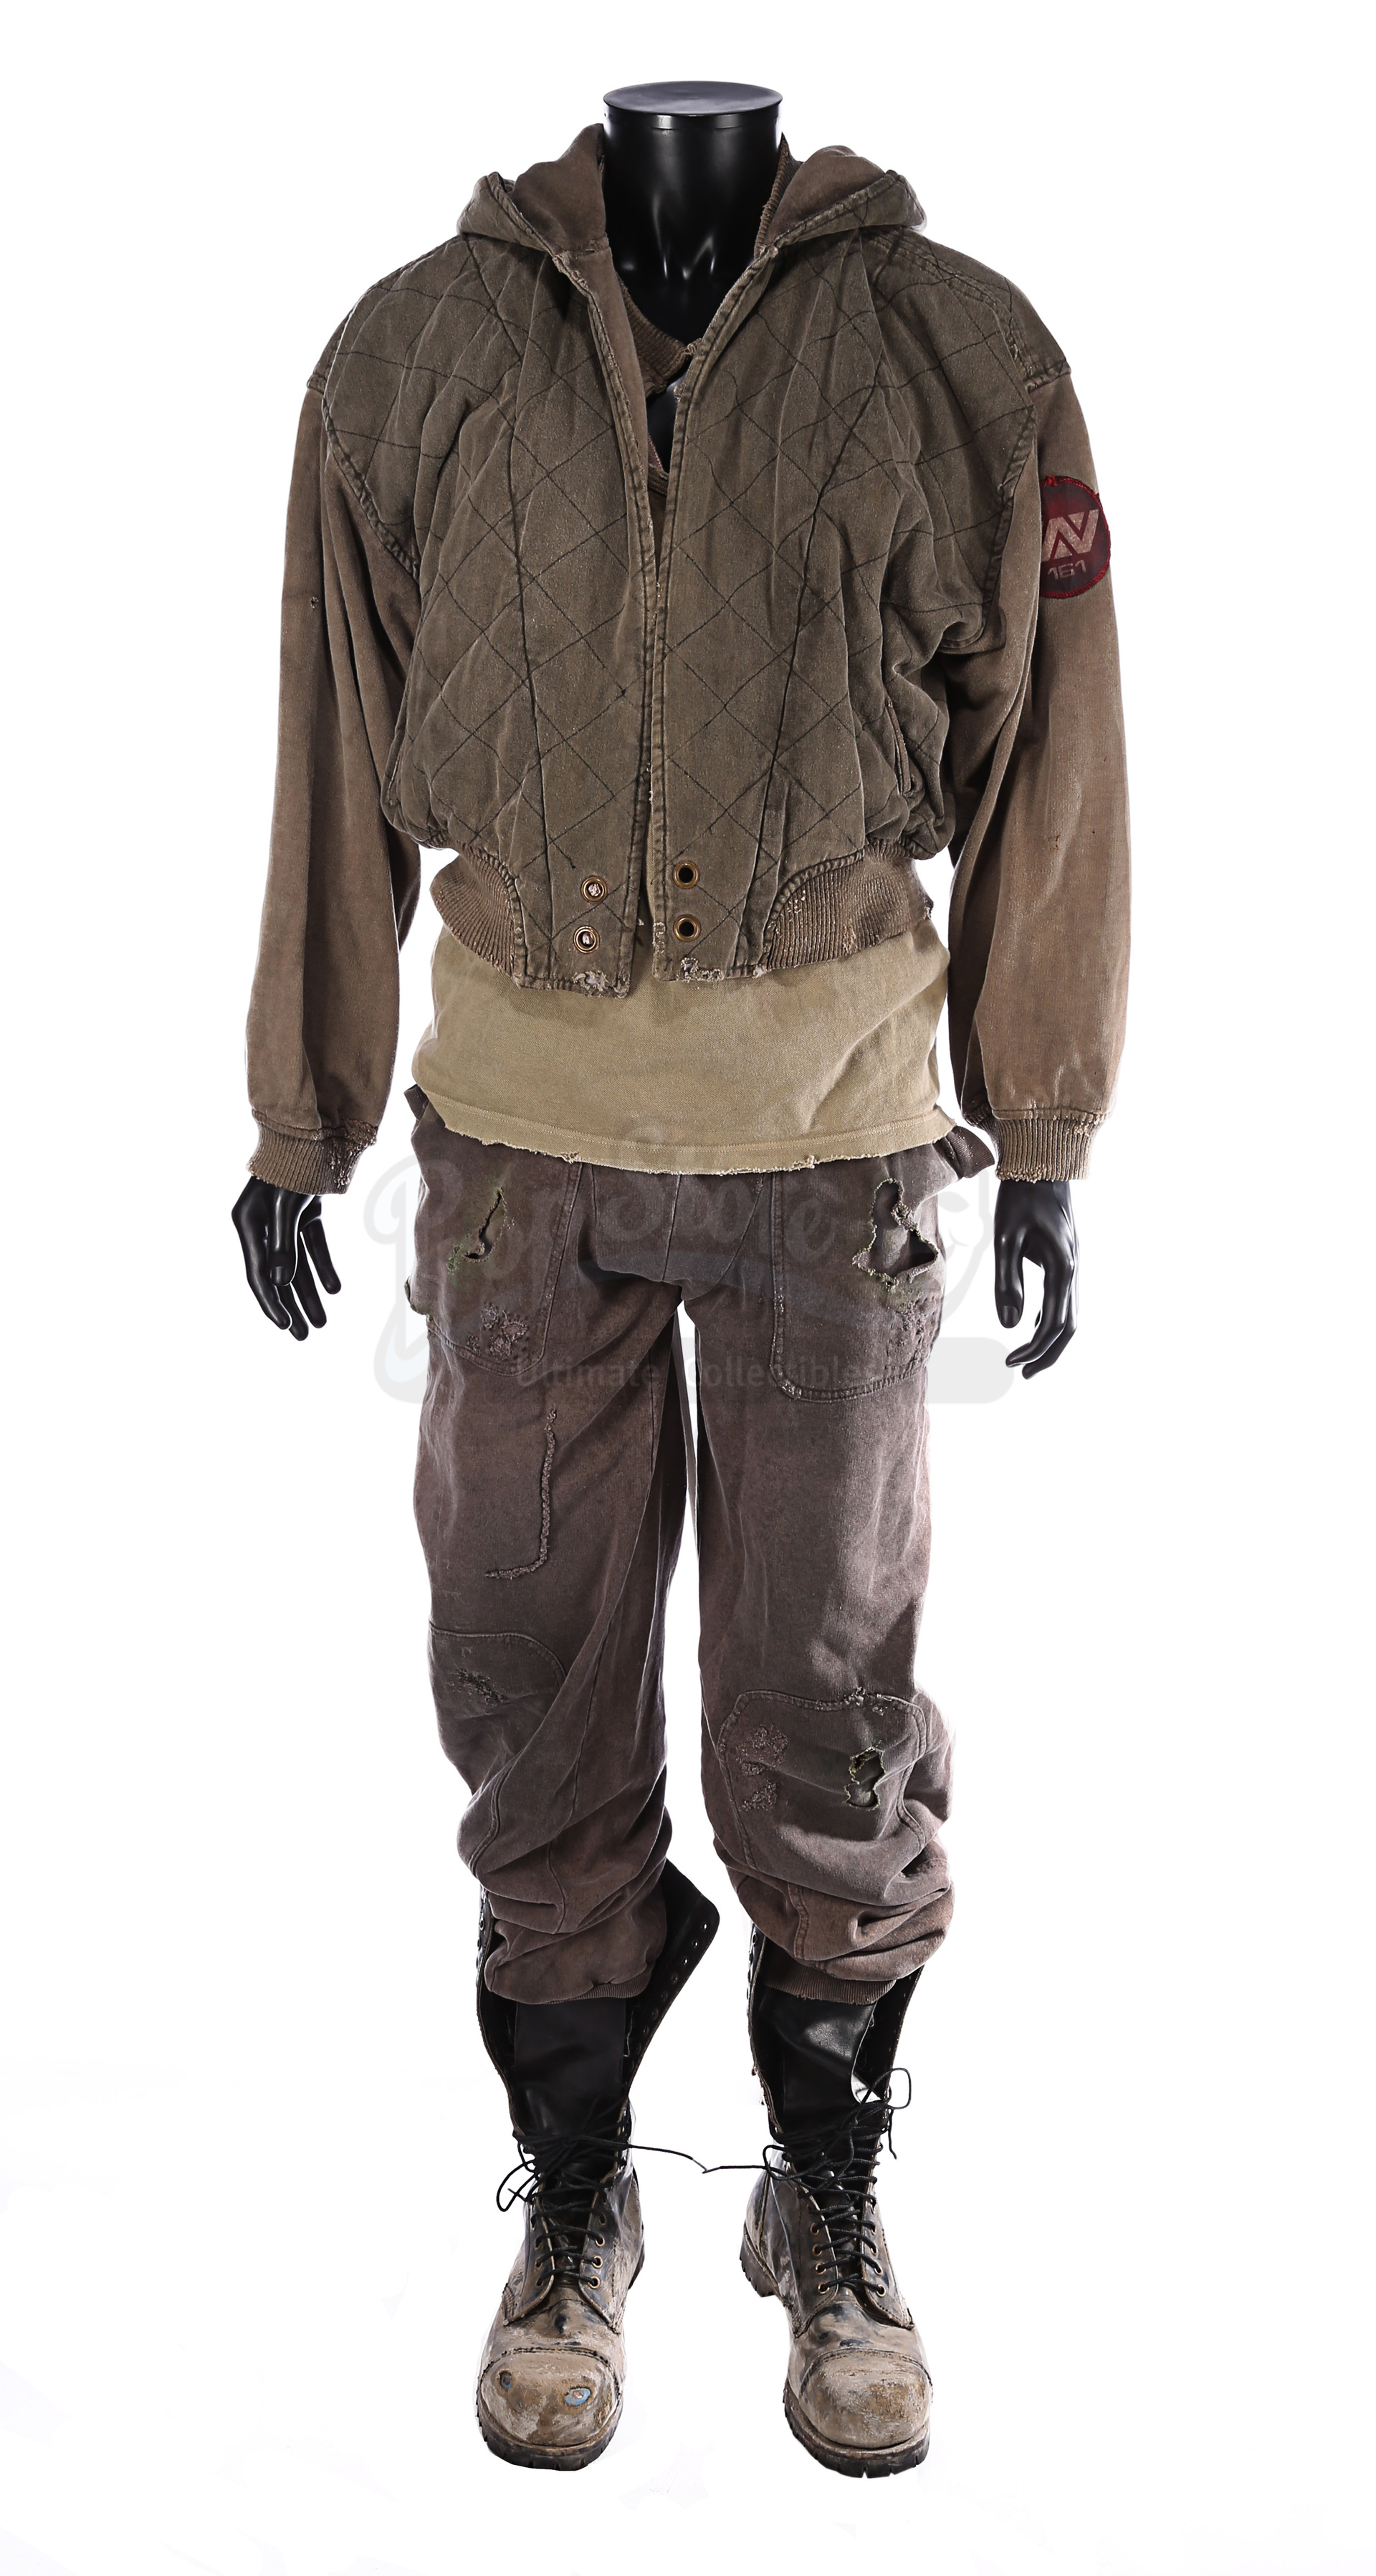 ALIEN3 (1992) - Dillon's (Charles S. Dutton) Complete Costume - Image 4 of 17